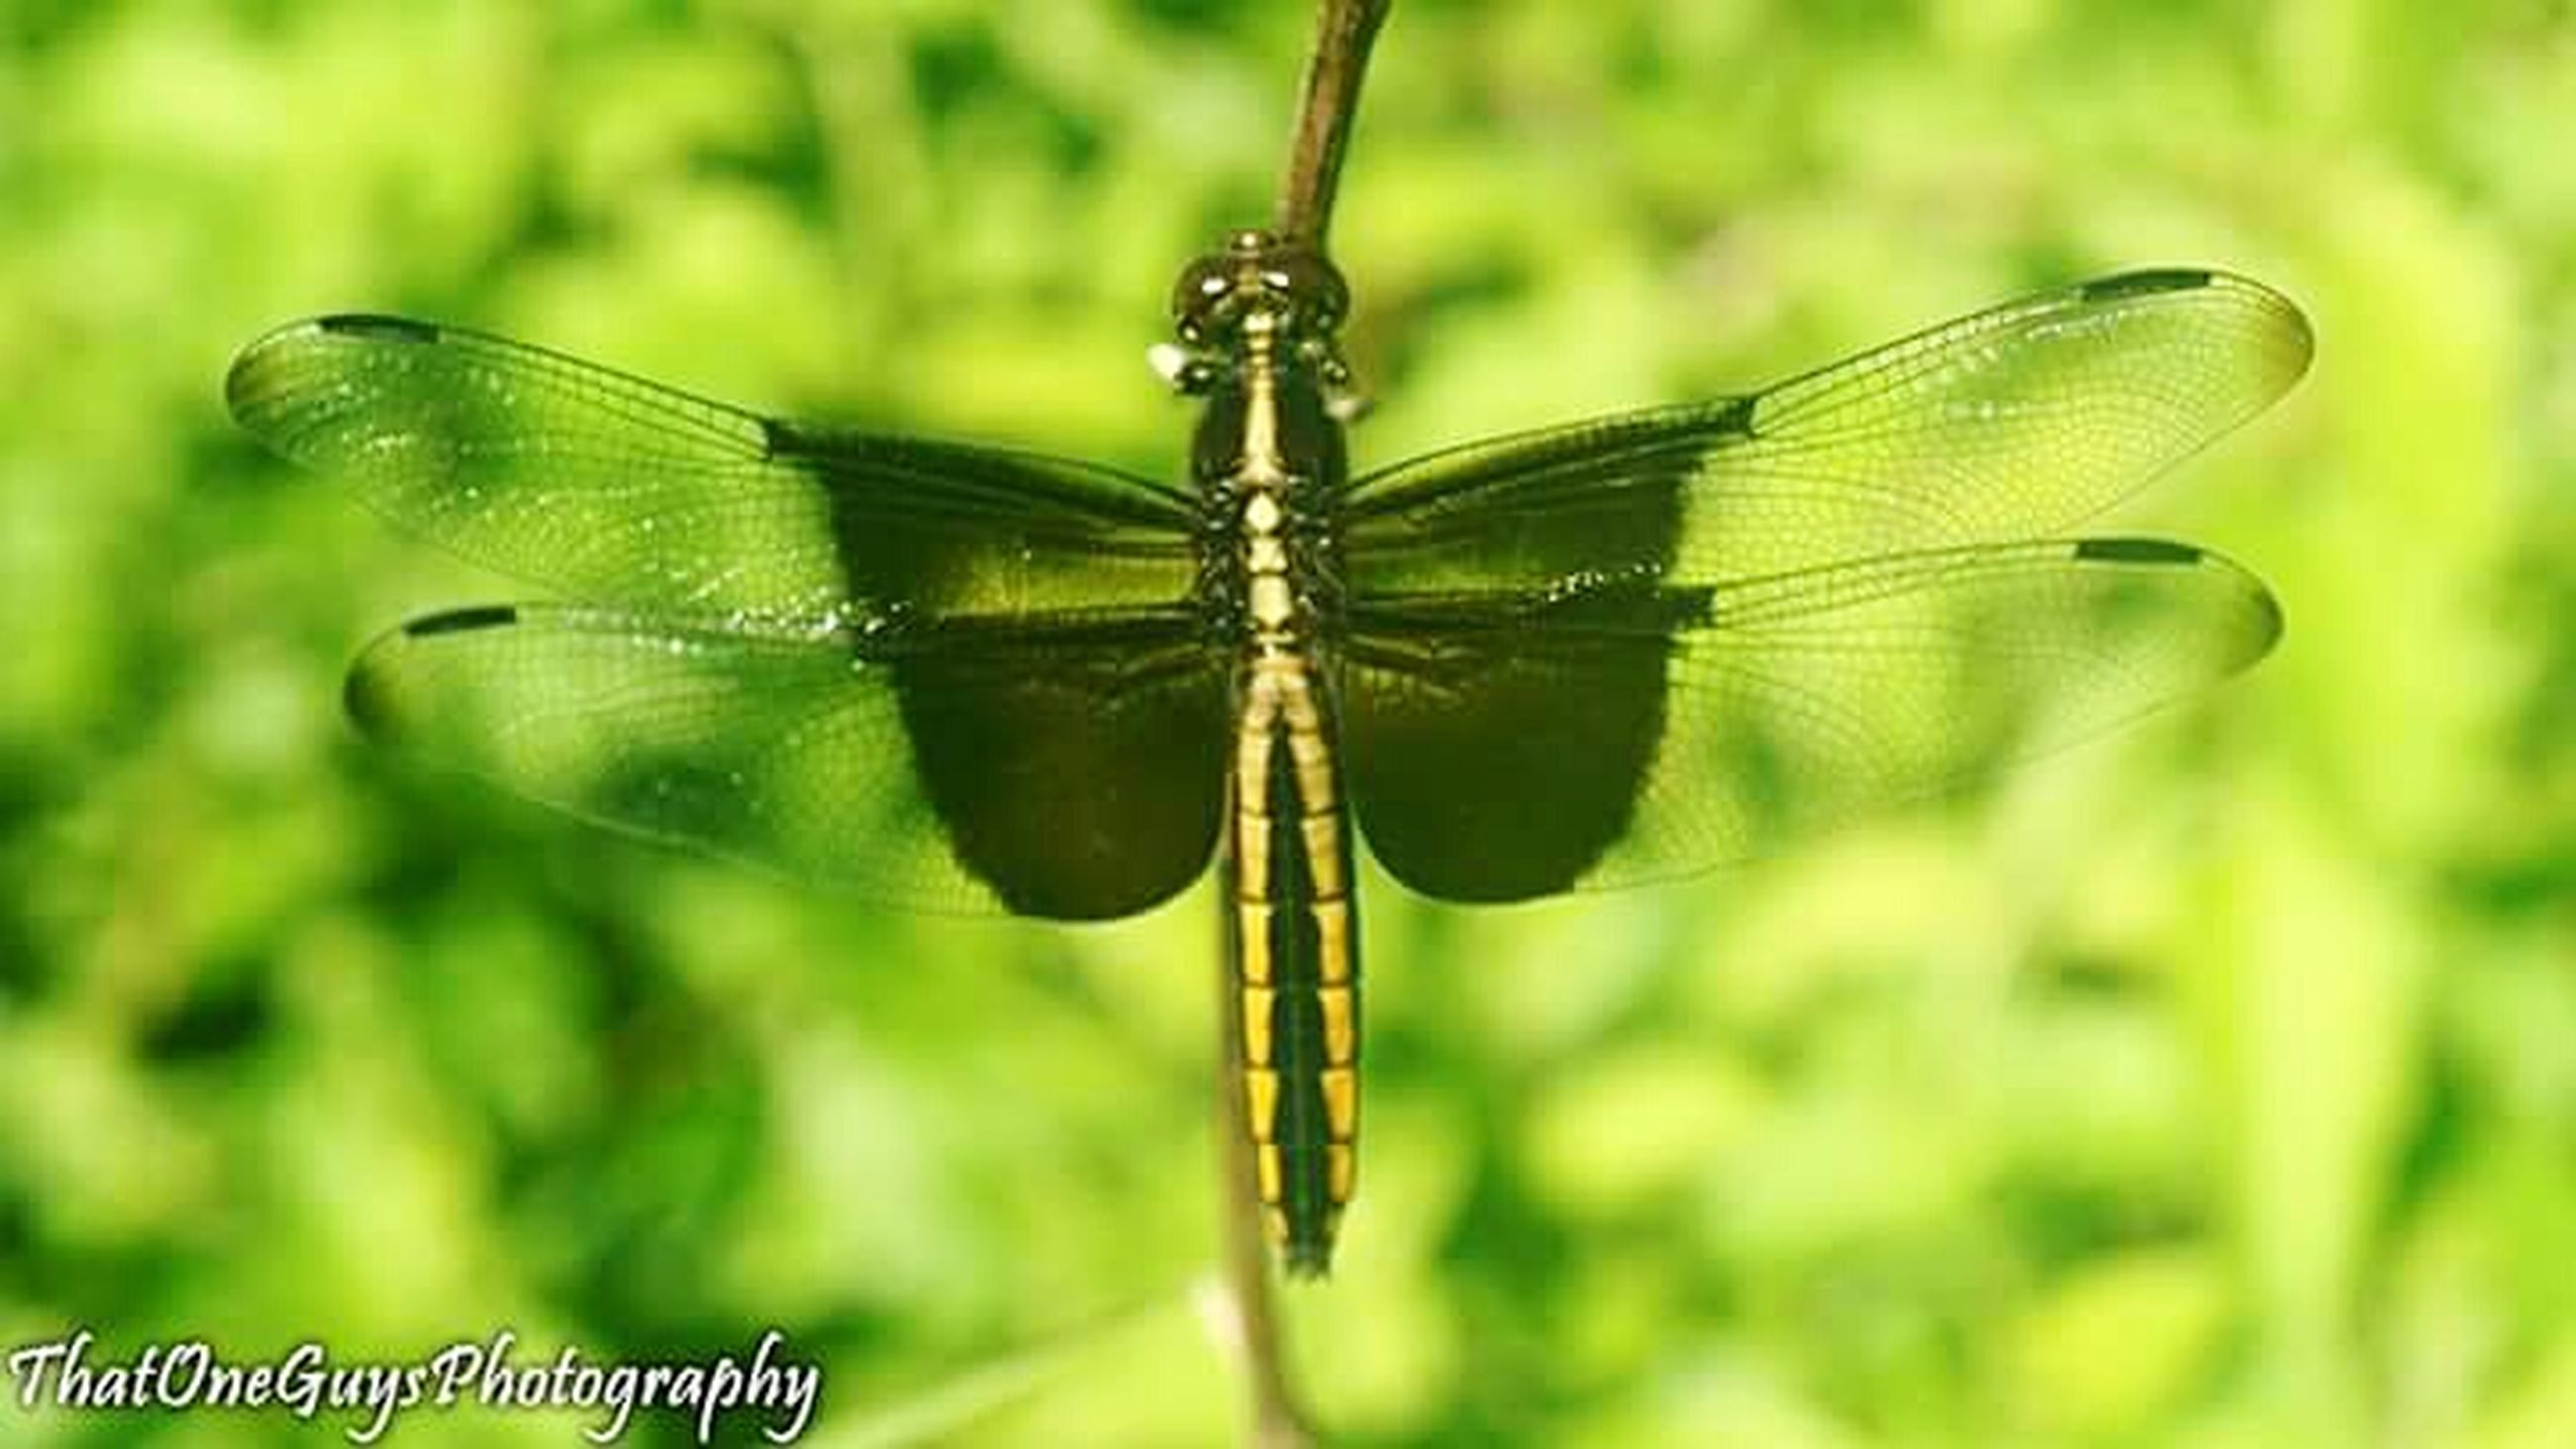 one animal, animal themes, insect, animals in the wild, wildlife, dragonfly, focus on foreground, animal wing, close-up, nature, butterfly - insect, butterfly, plant, animal markings, day, outdoors, perching, zoology, no people, green color